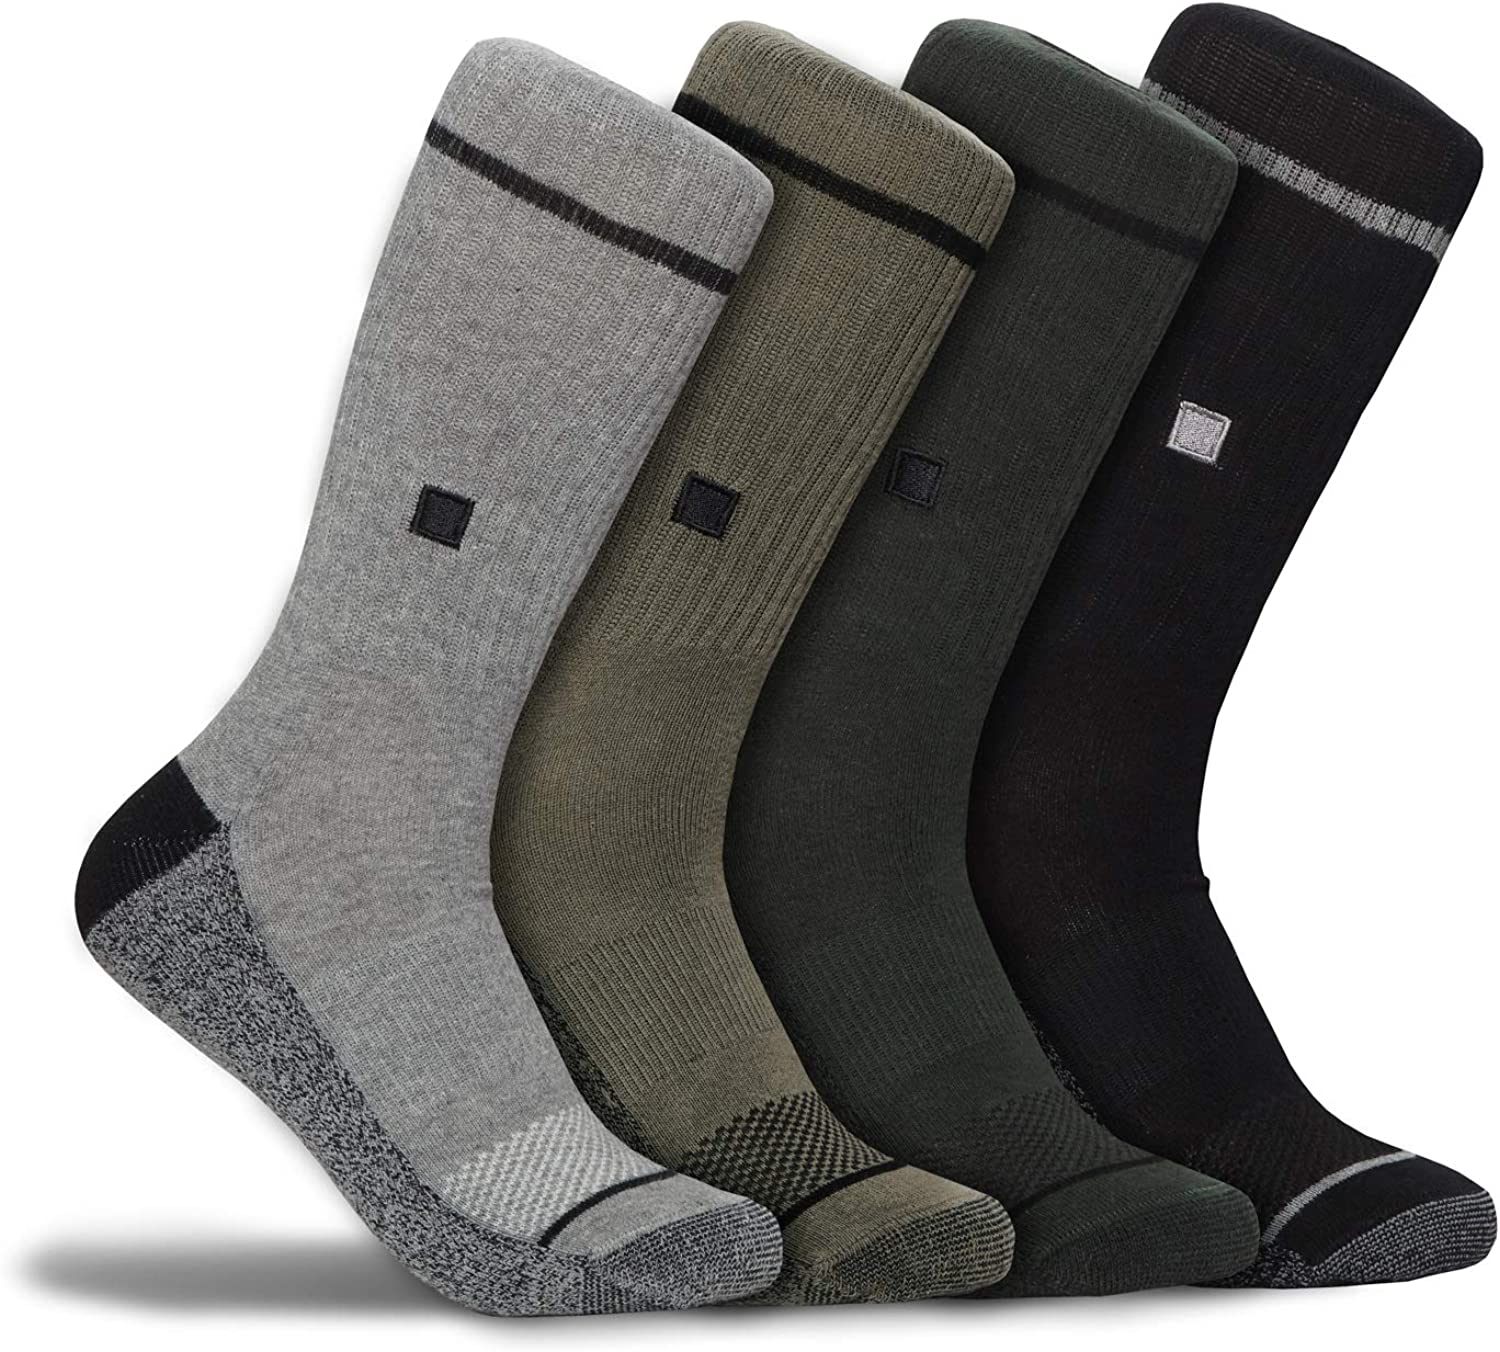 Work & Outdoor True Fit Impact Cushion Sock - Moisture Wicking Breathable 360 Support (4 pk) Work Socks for Men and Women